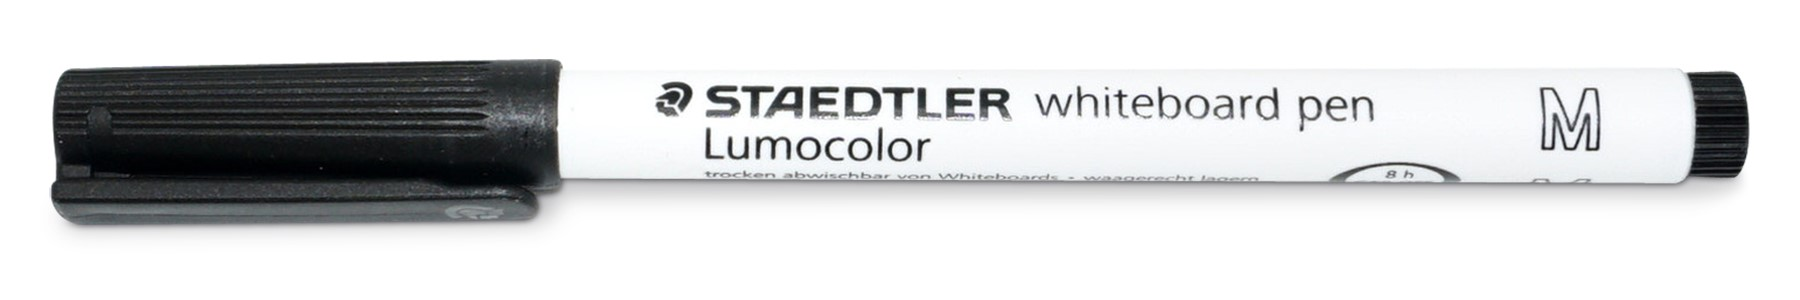 Staedtler Lumocolor Whiteboard Marker, Strichbreite 1mm